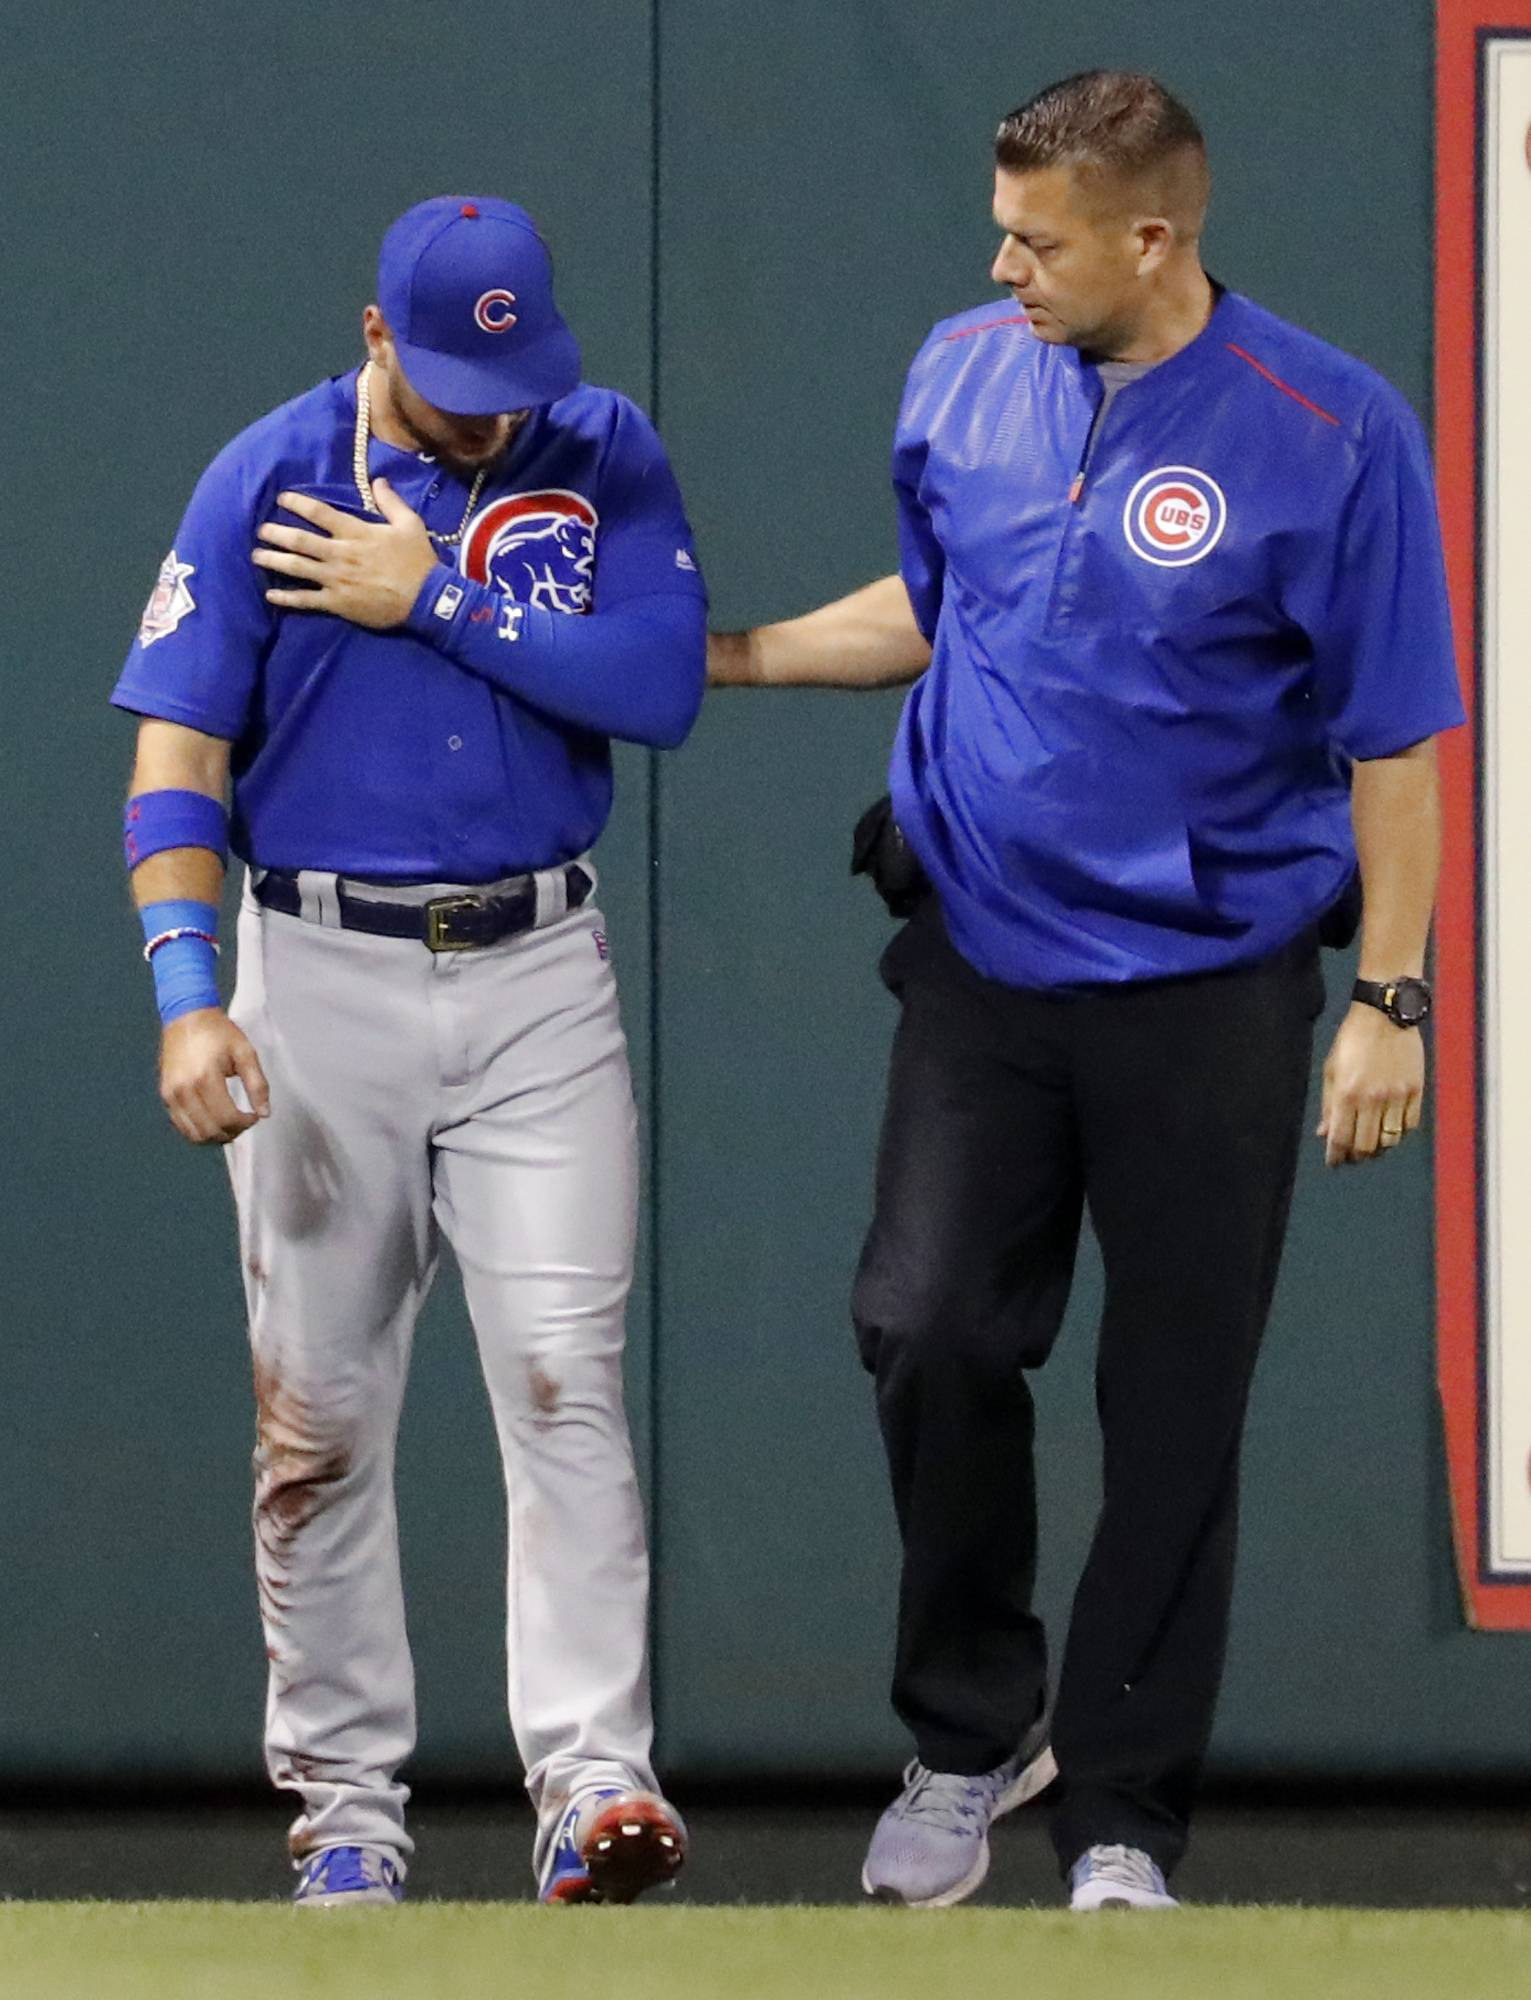 Chicago Cubs' Almora Jr. sore but smiling